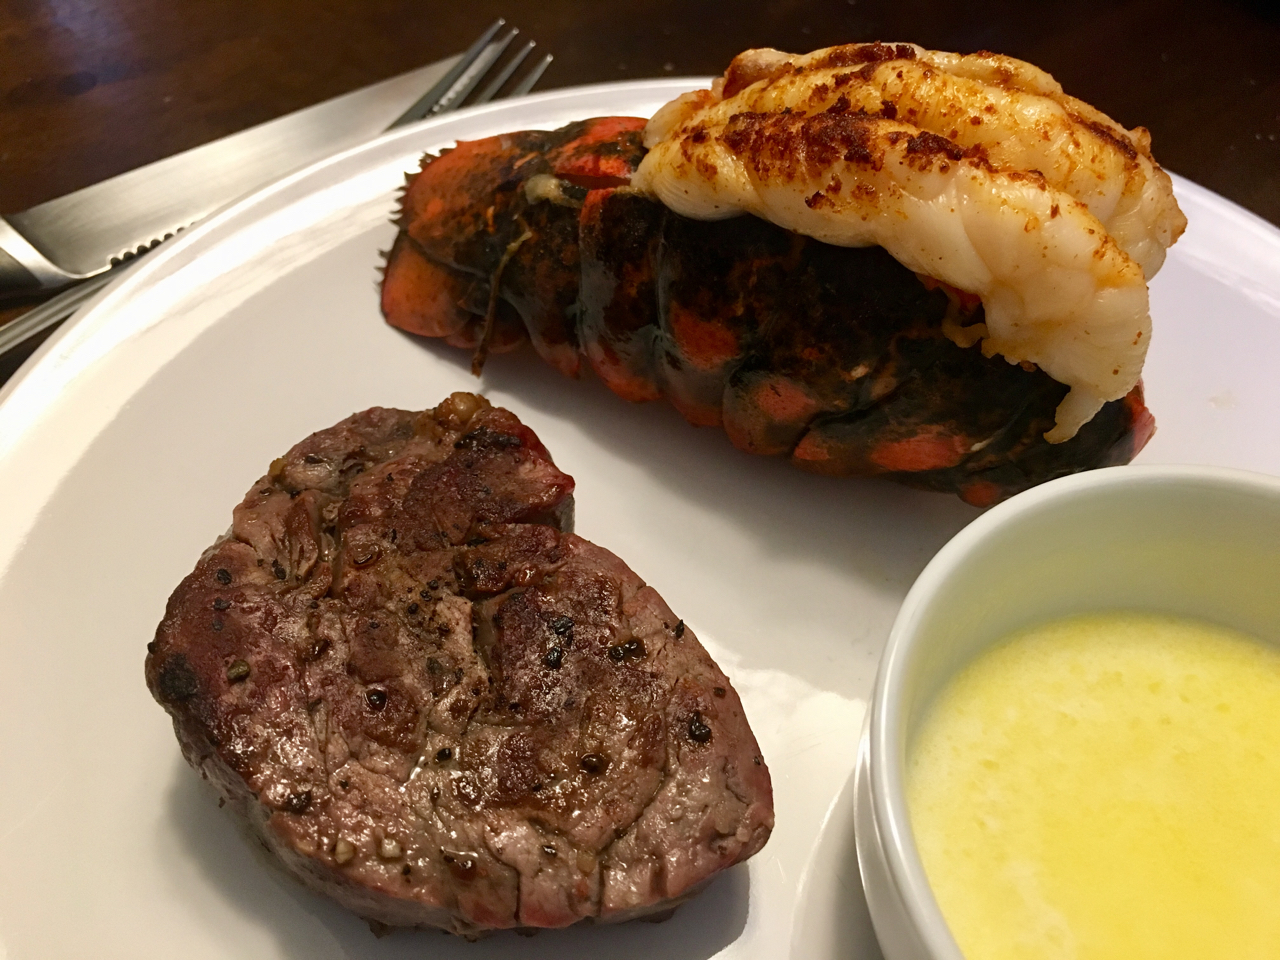 Recipe for Surf and Turf Lobster Tail and Steak Made on the Big Green Egg